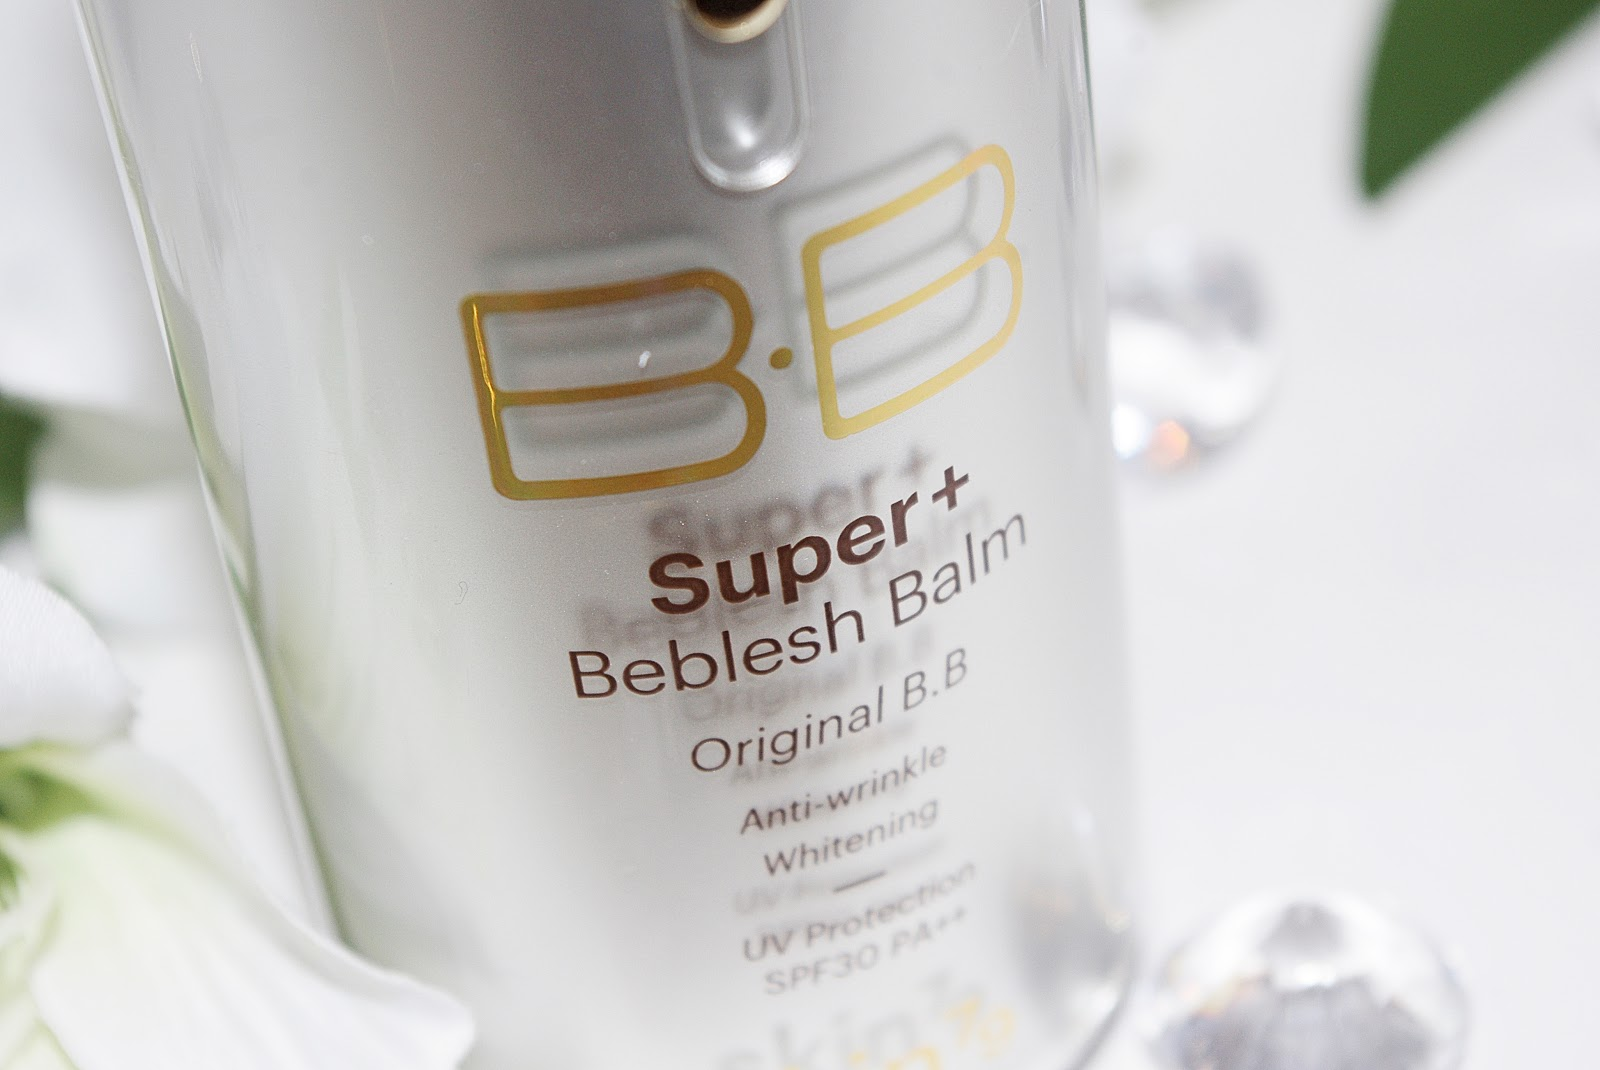 Skin79 Super+ Beblesh Balm Cream Vip Gold